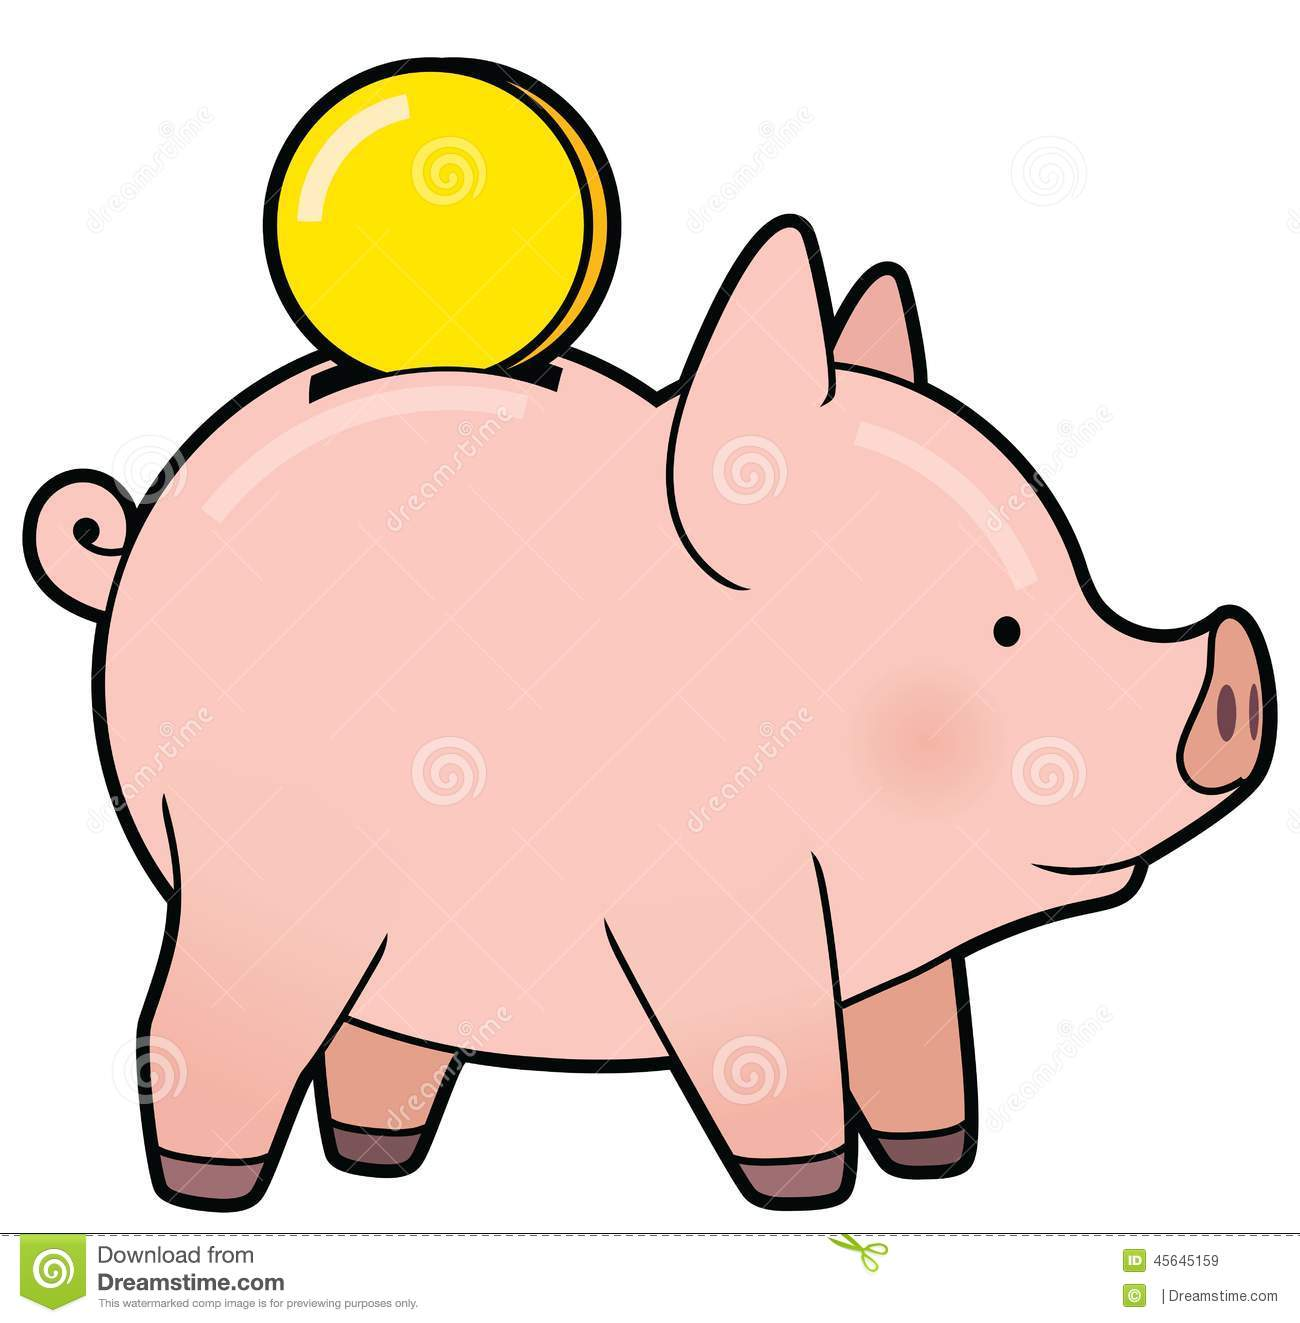 Animated piggy bank clipart. With coin cartoon stock